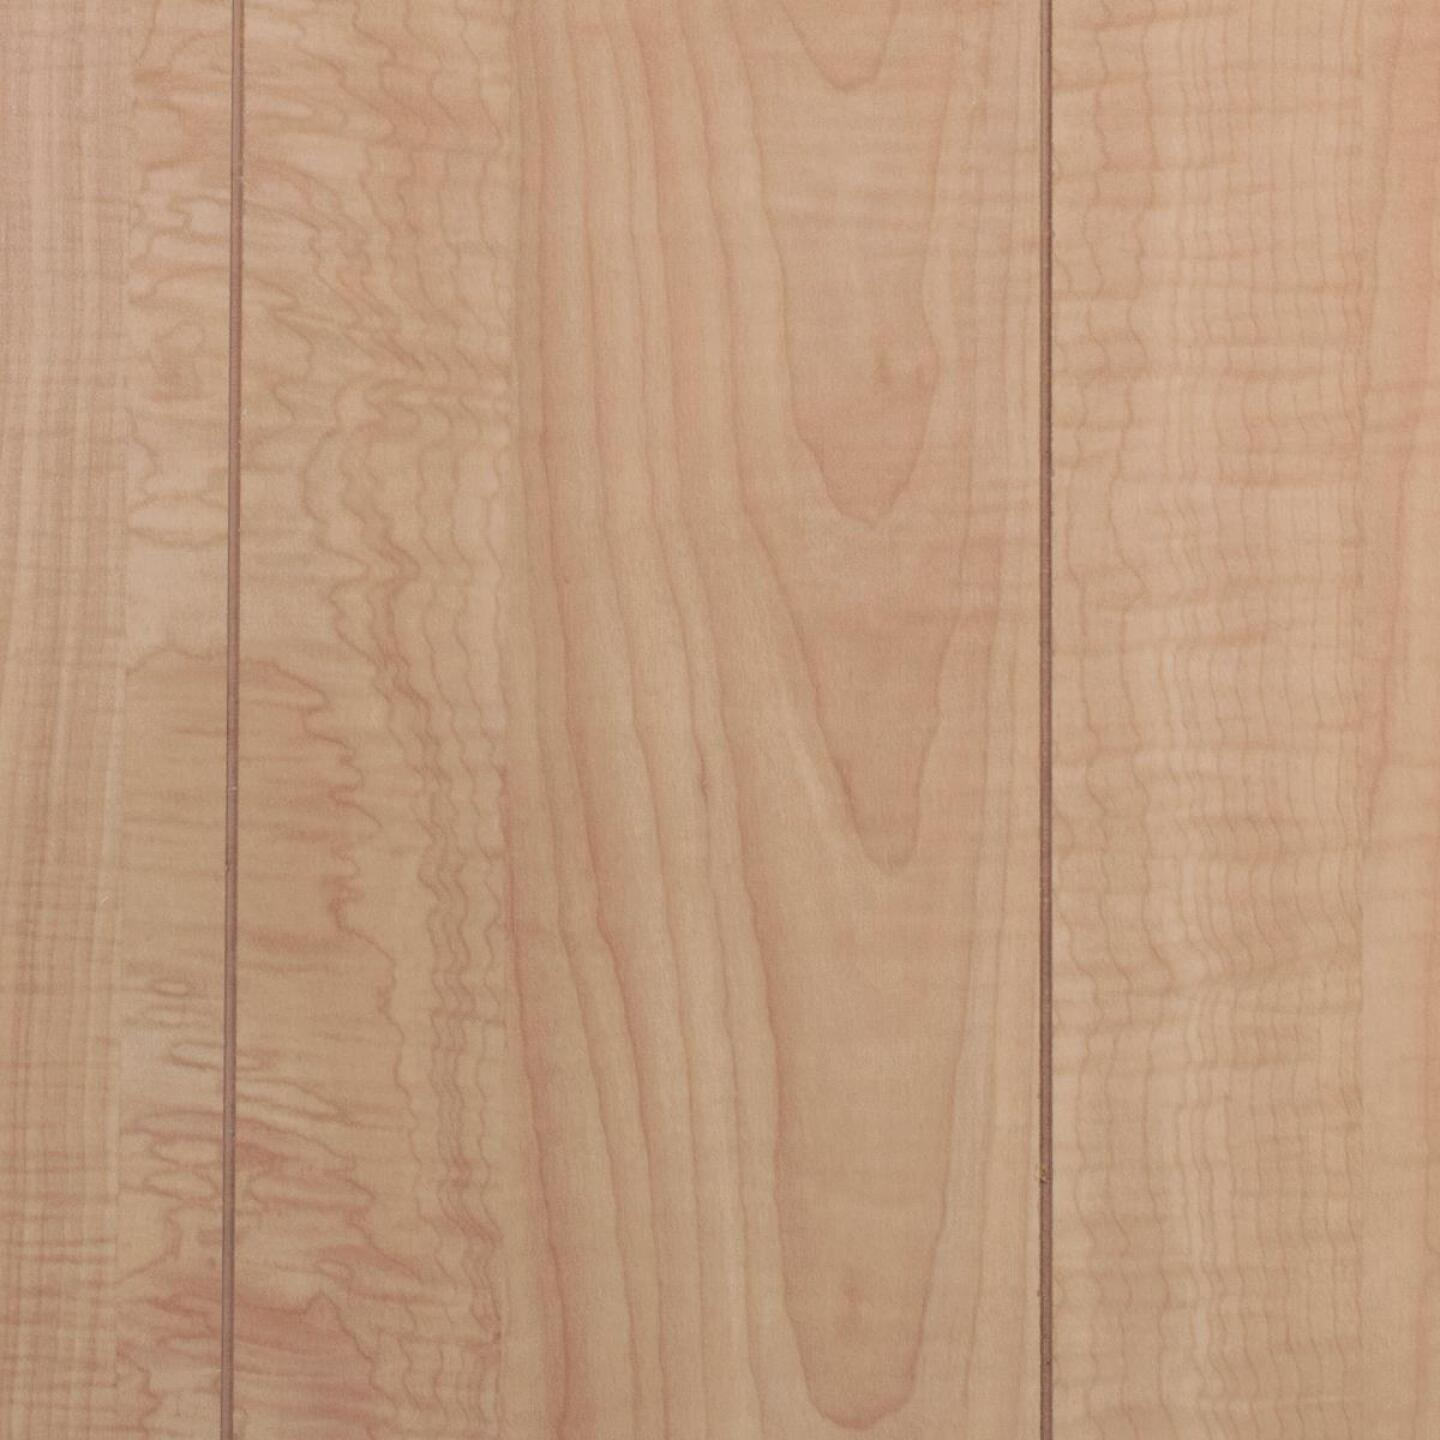 Global Product Sourcing 4 Ft. x 8 Ft. x 1/4 In. Madison Maple Random Groove Profile Wall Paneling Image 1